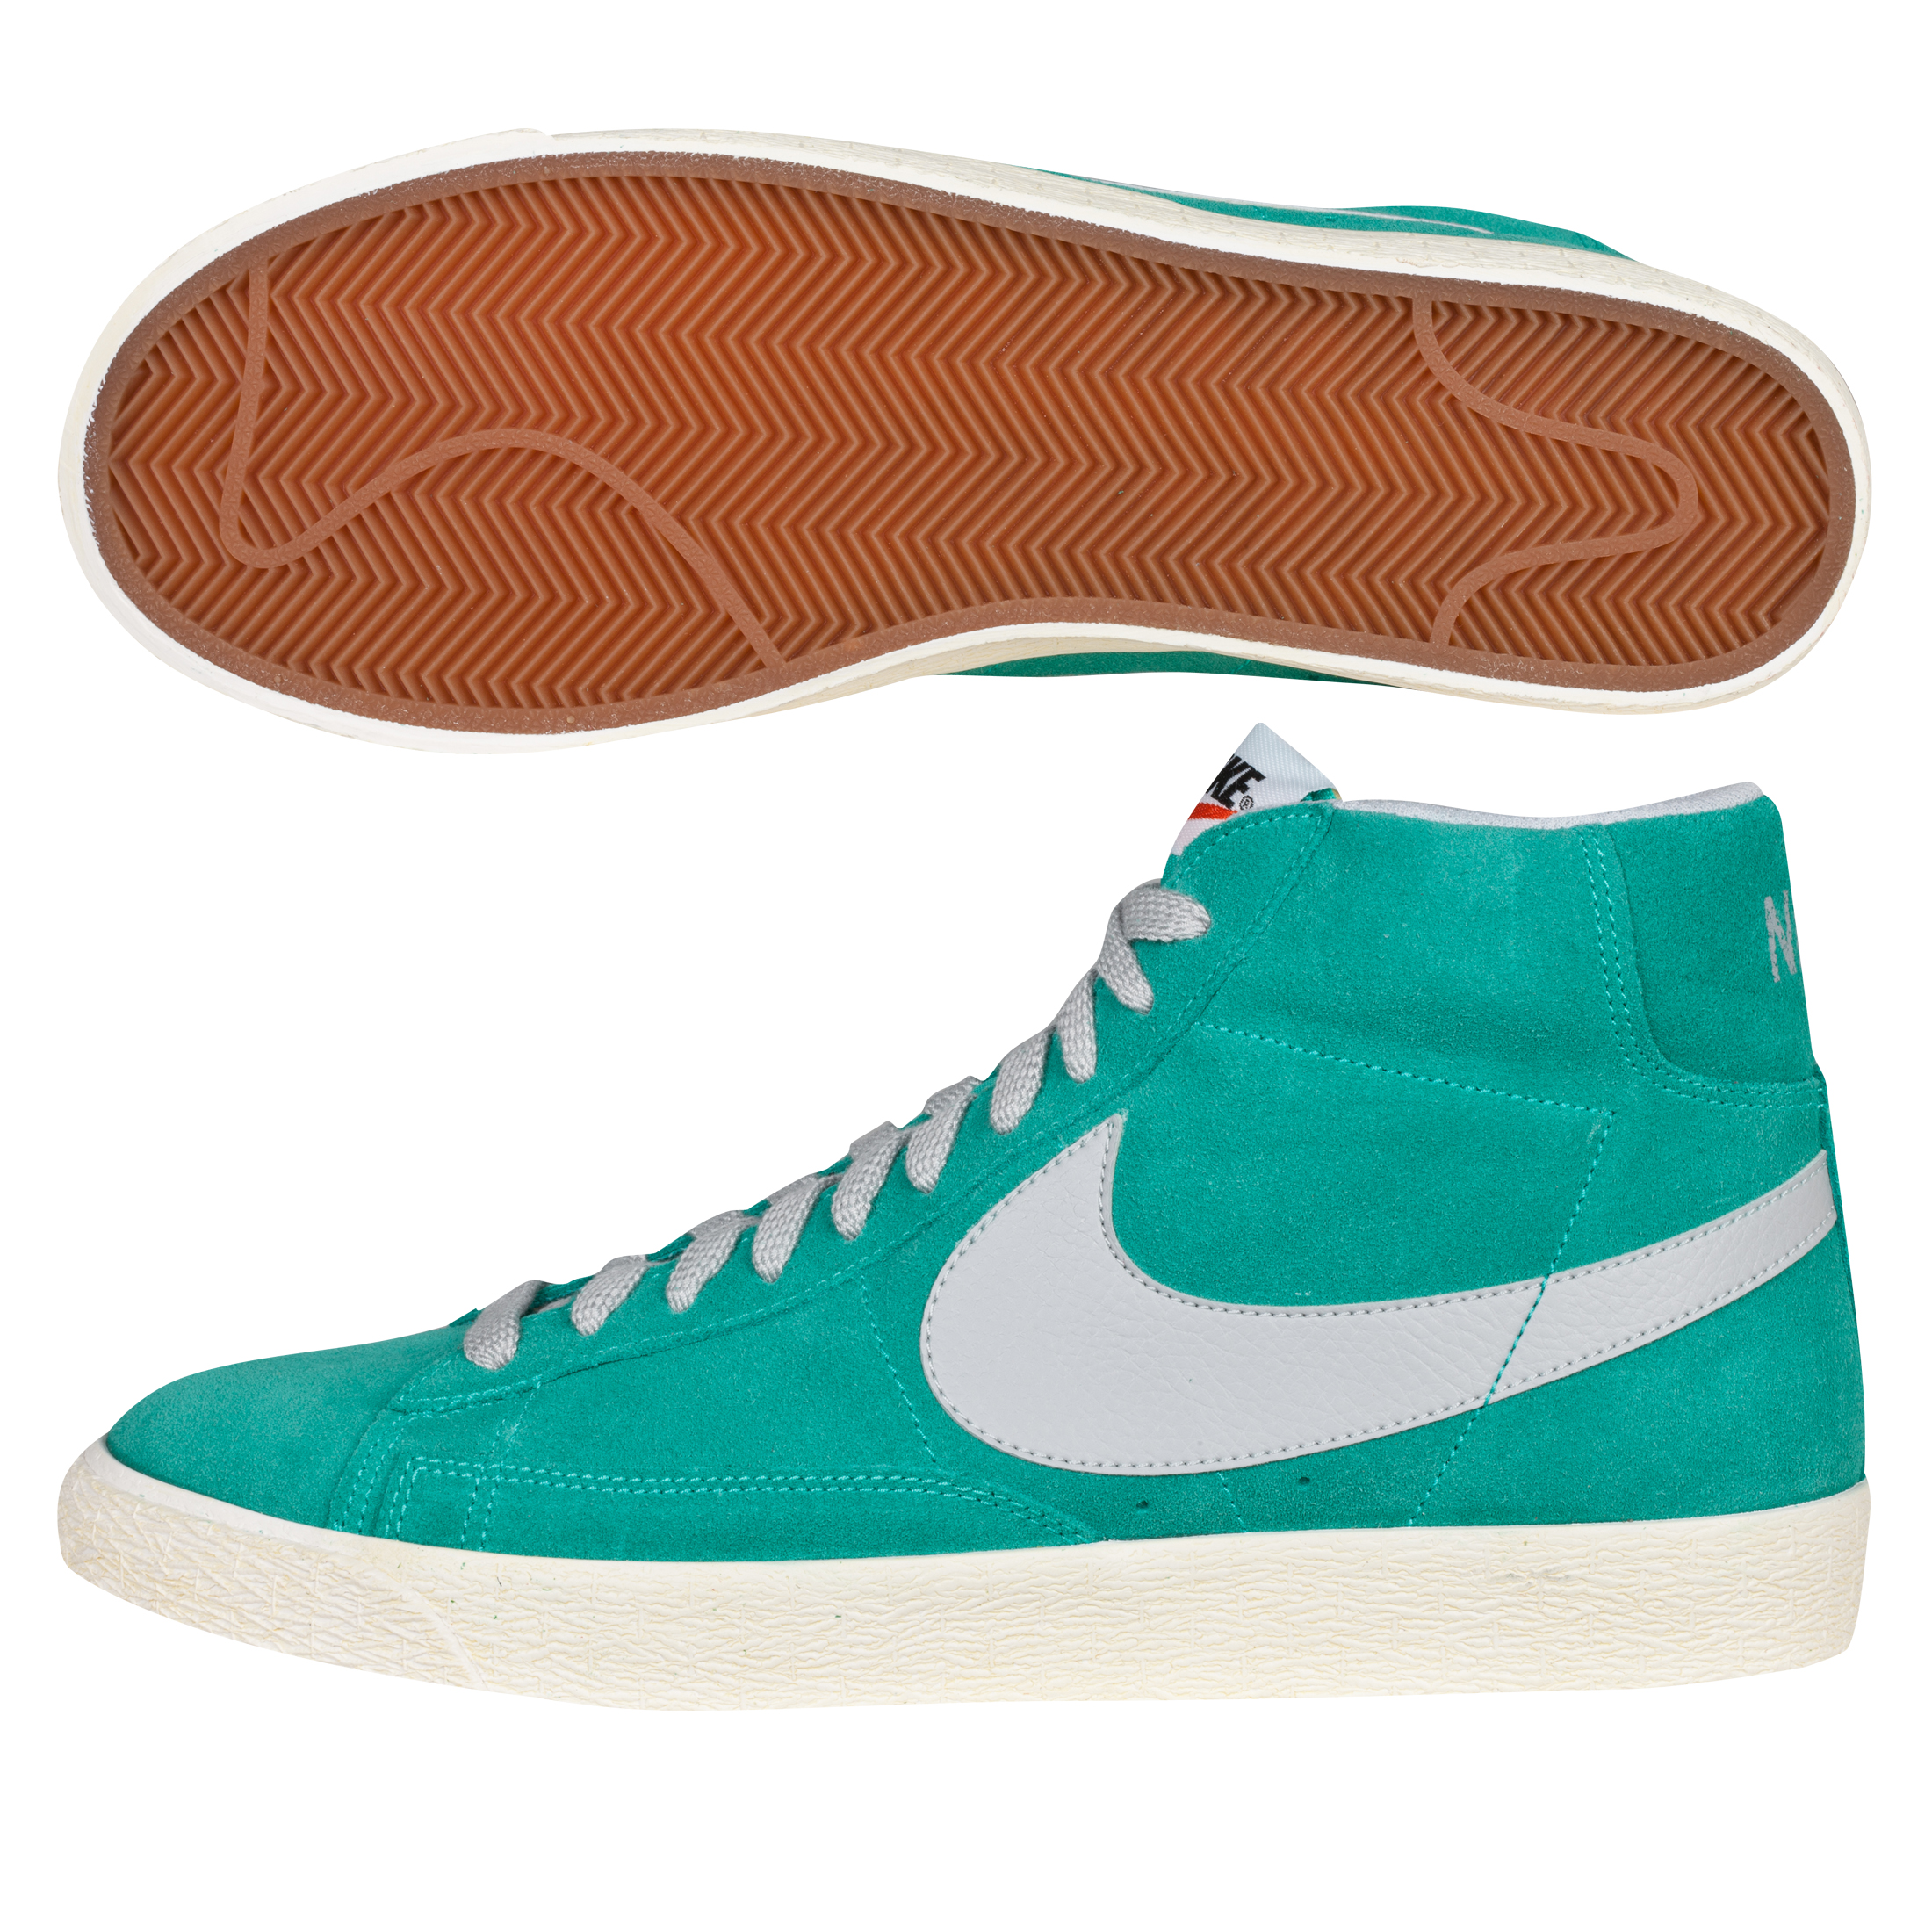 Nike Blazer Mid Vintage Suede Trainers - Atomic Teal/Strata Grey